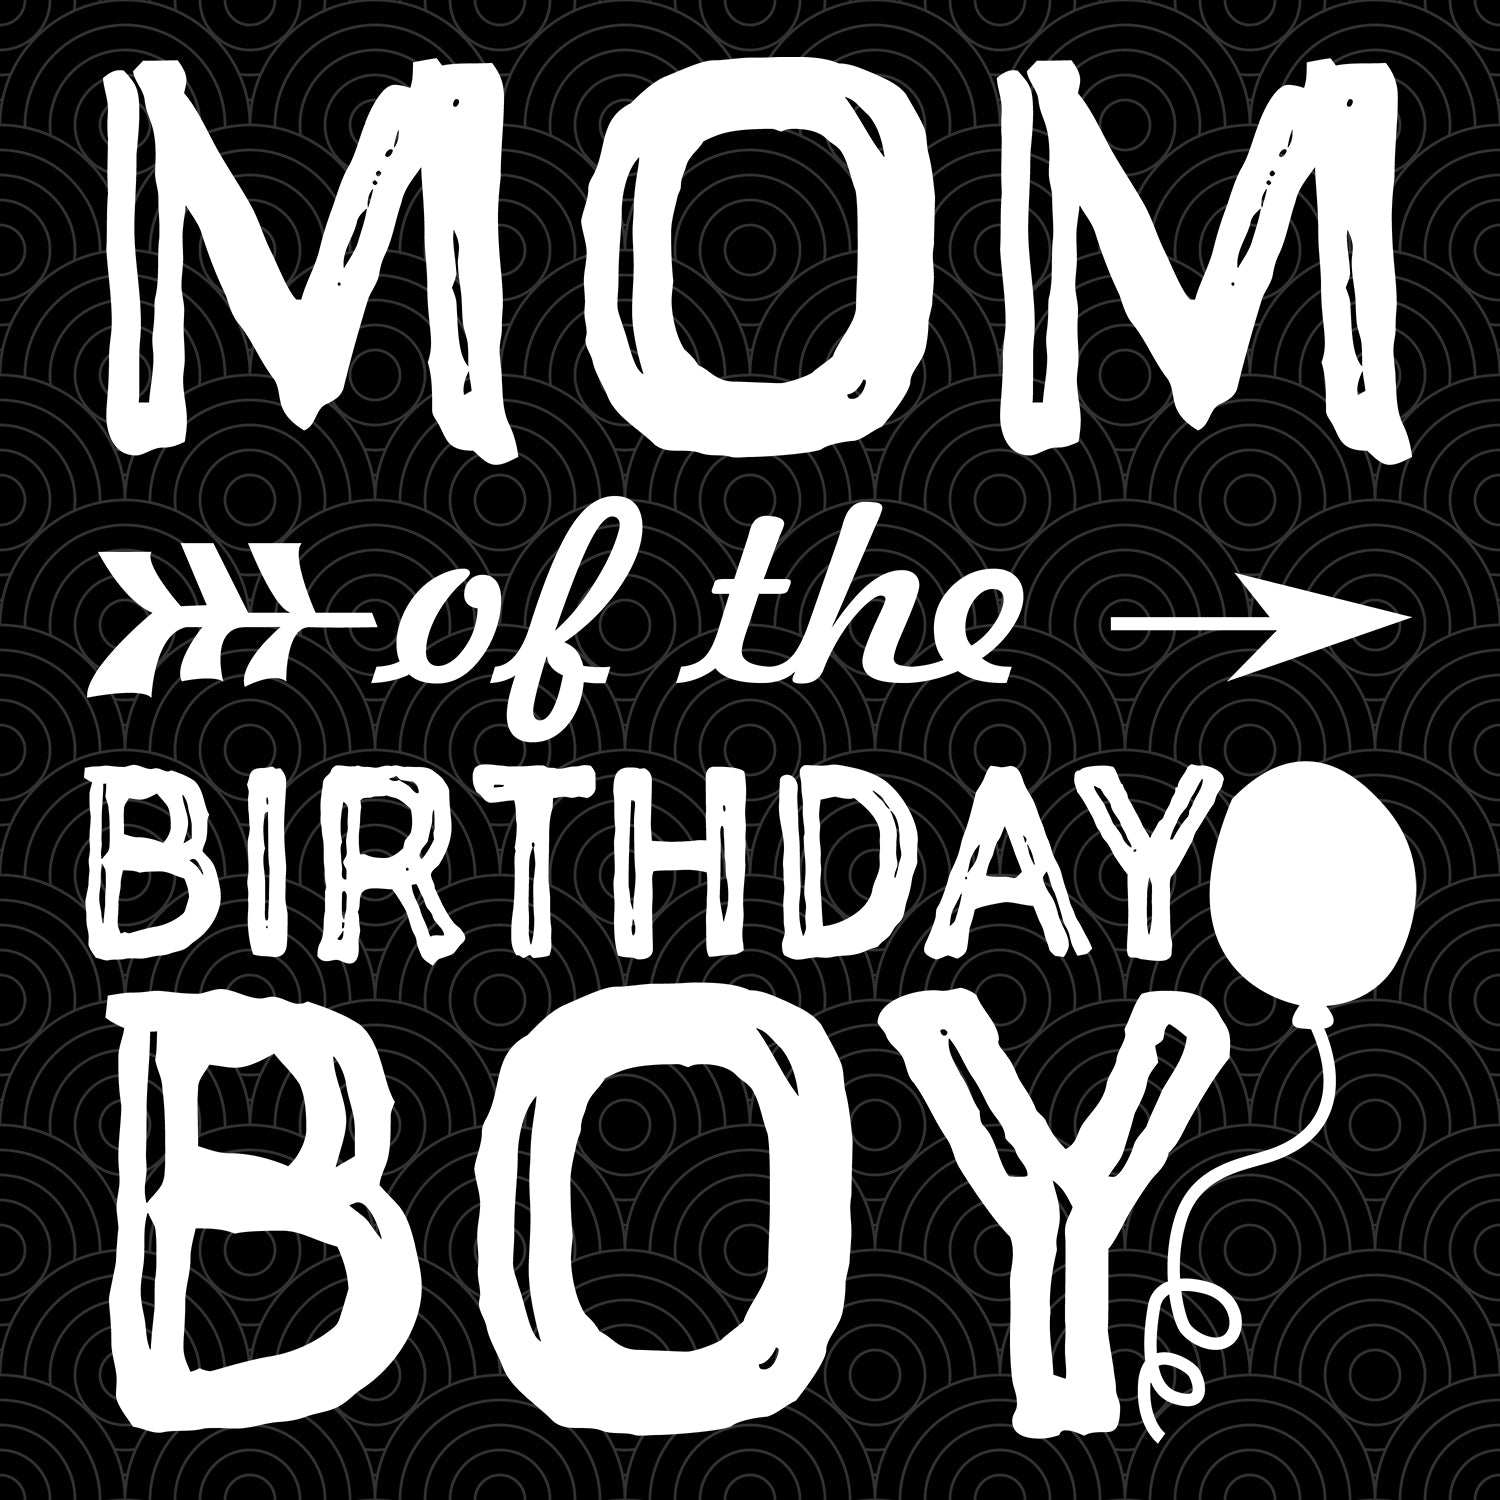 Mom of the birthday boy SVG, mom svg, mom shirt, mom gift, family svg, family shirt,family gift,trending svg, Files For Silhouette, Files For Cricut, SVG, DXF, EPS, PNG, Instant Download